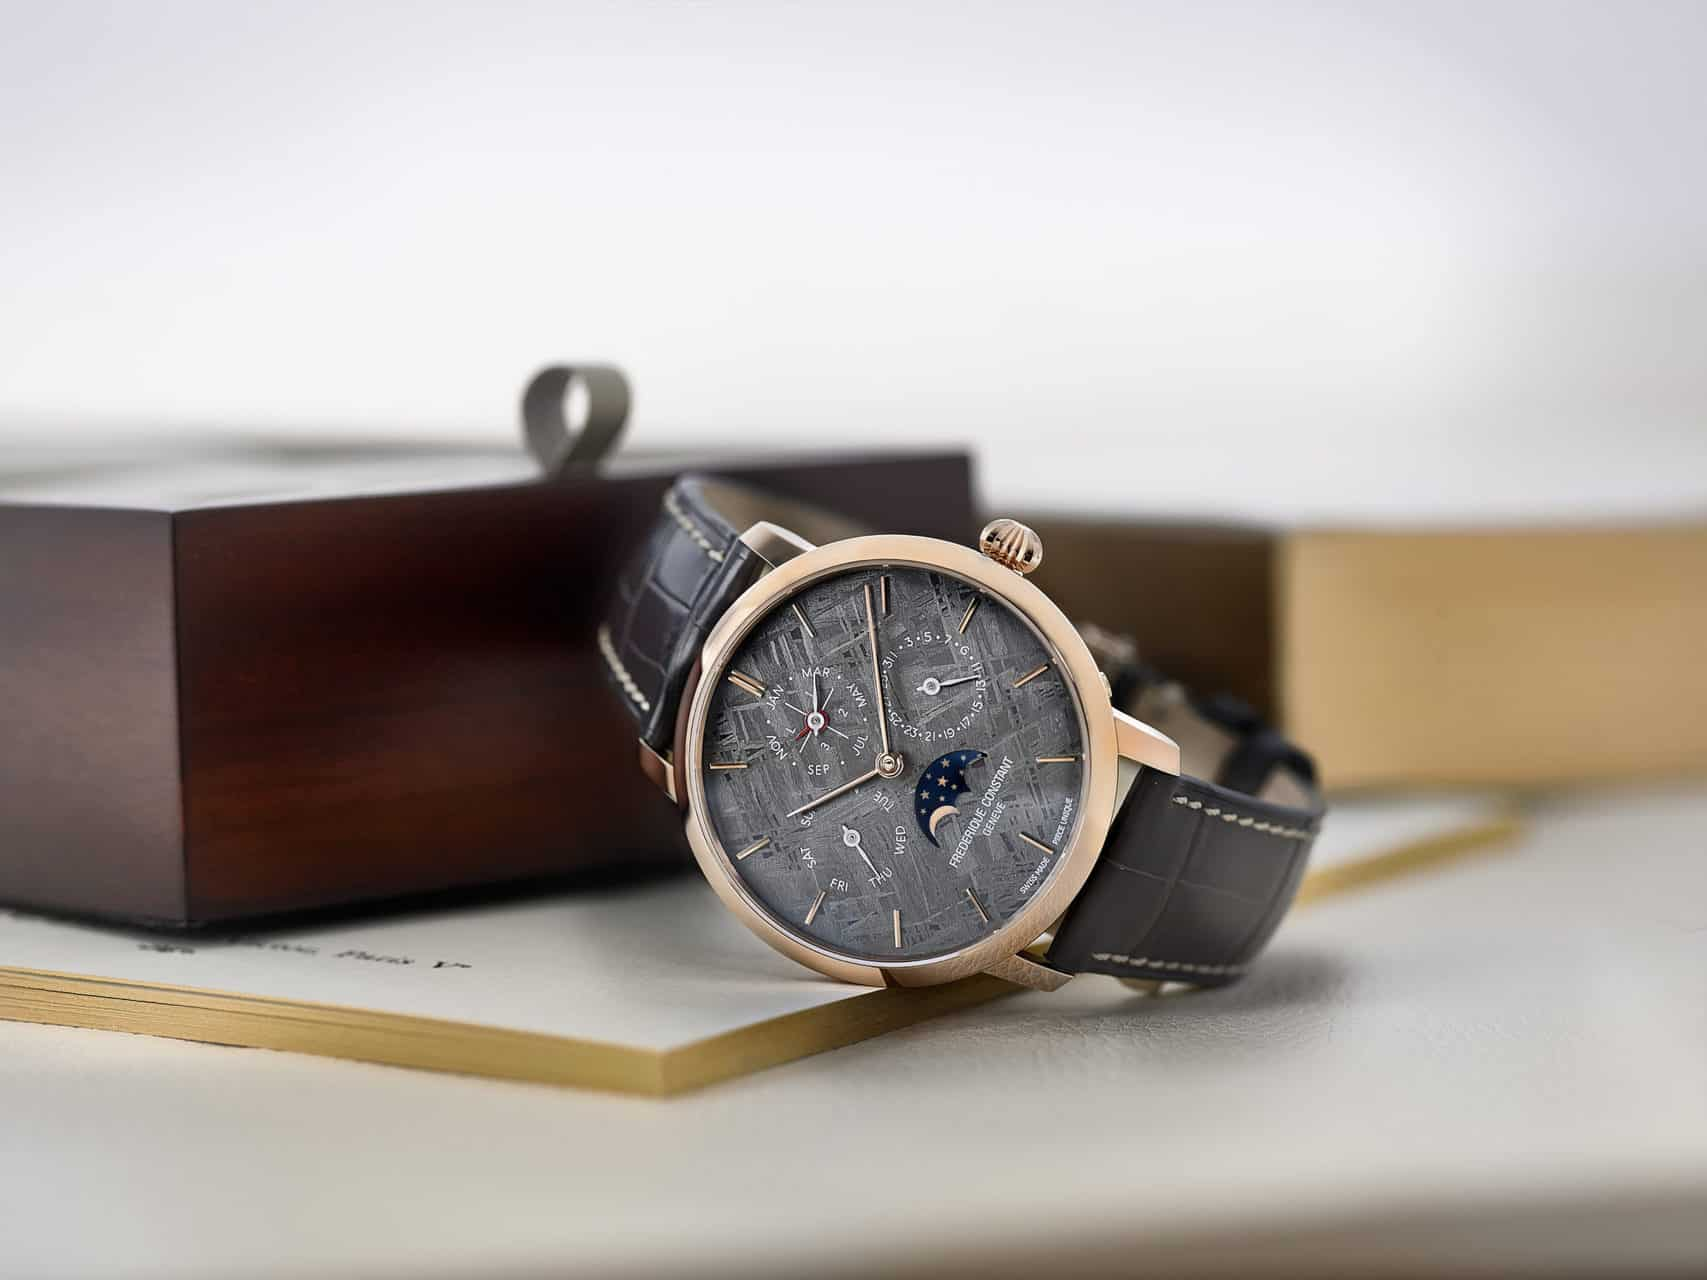 Frederique Constant at Only Watch: Unique Timepiece for a Good Cause